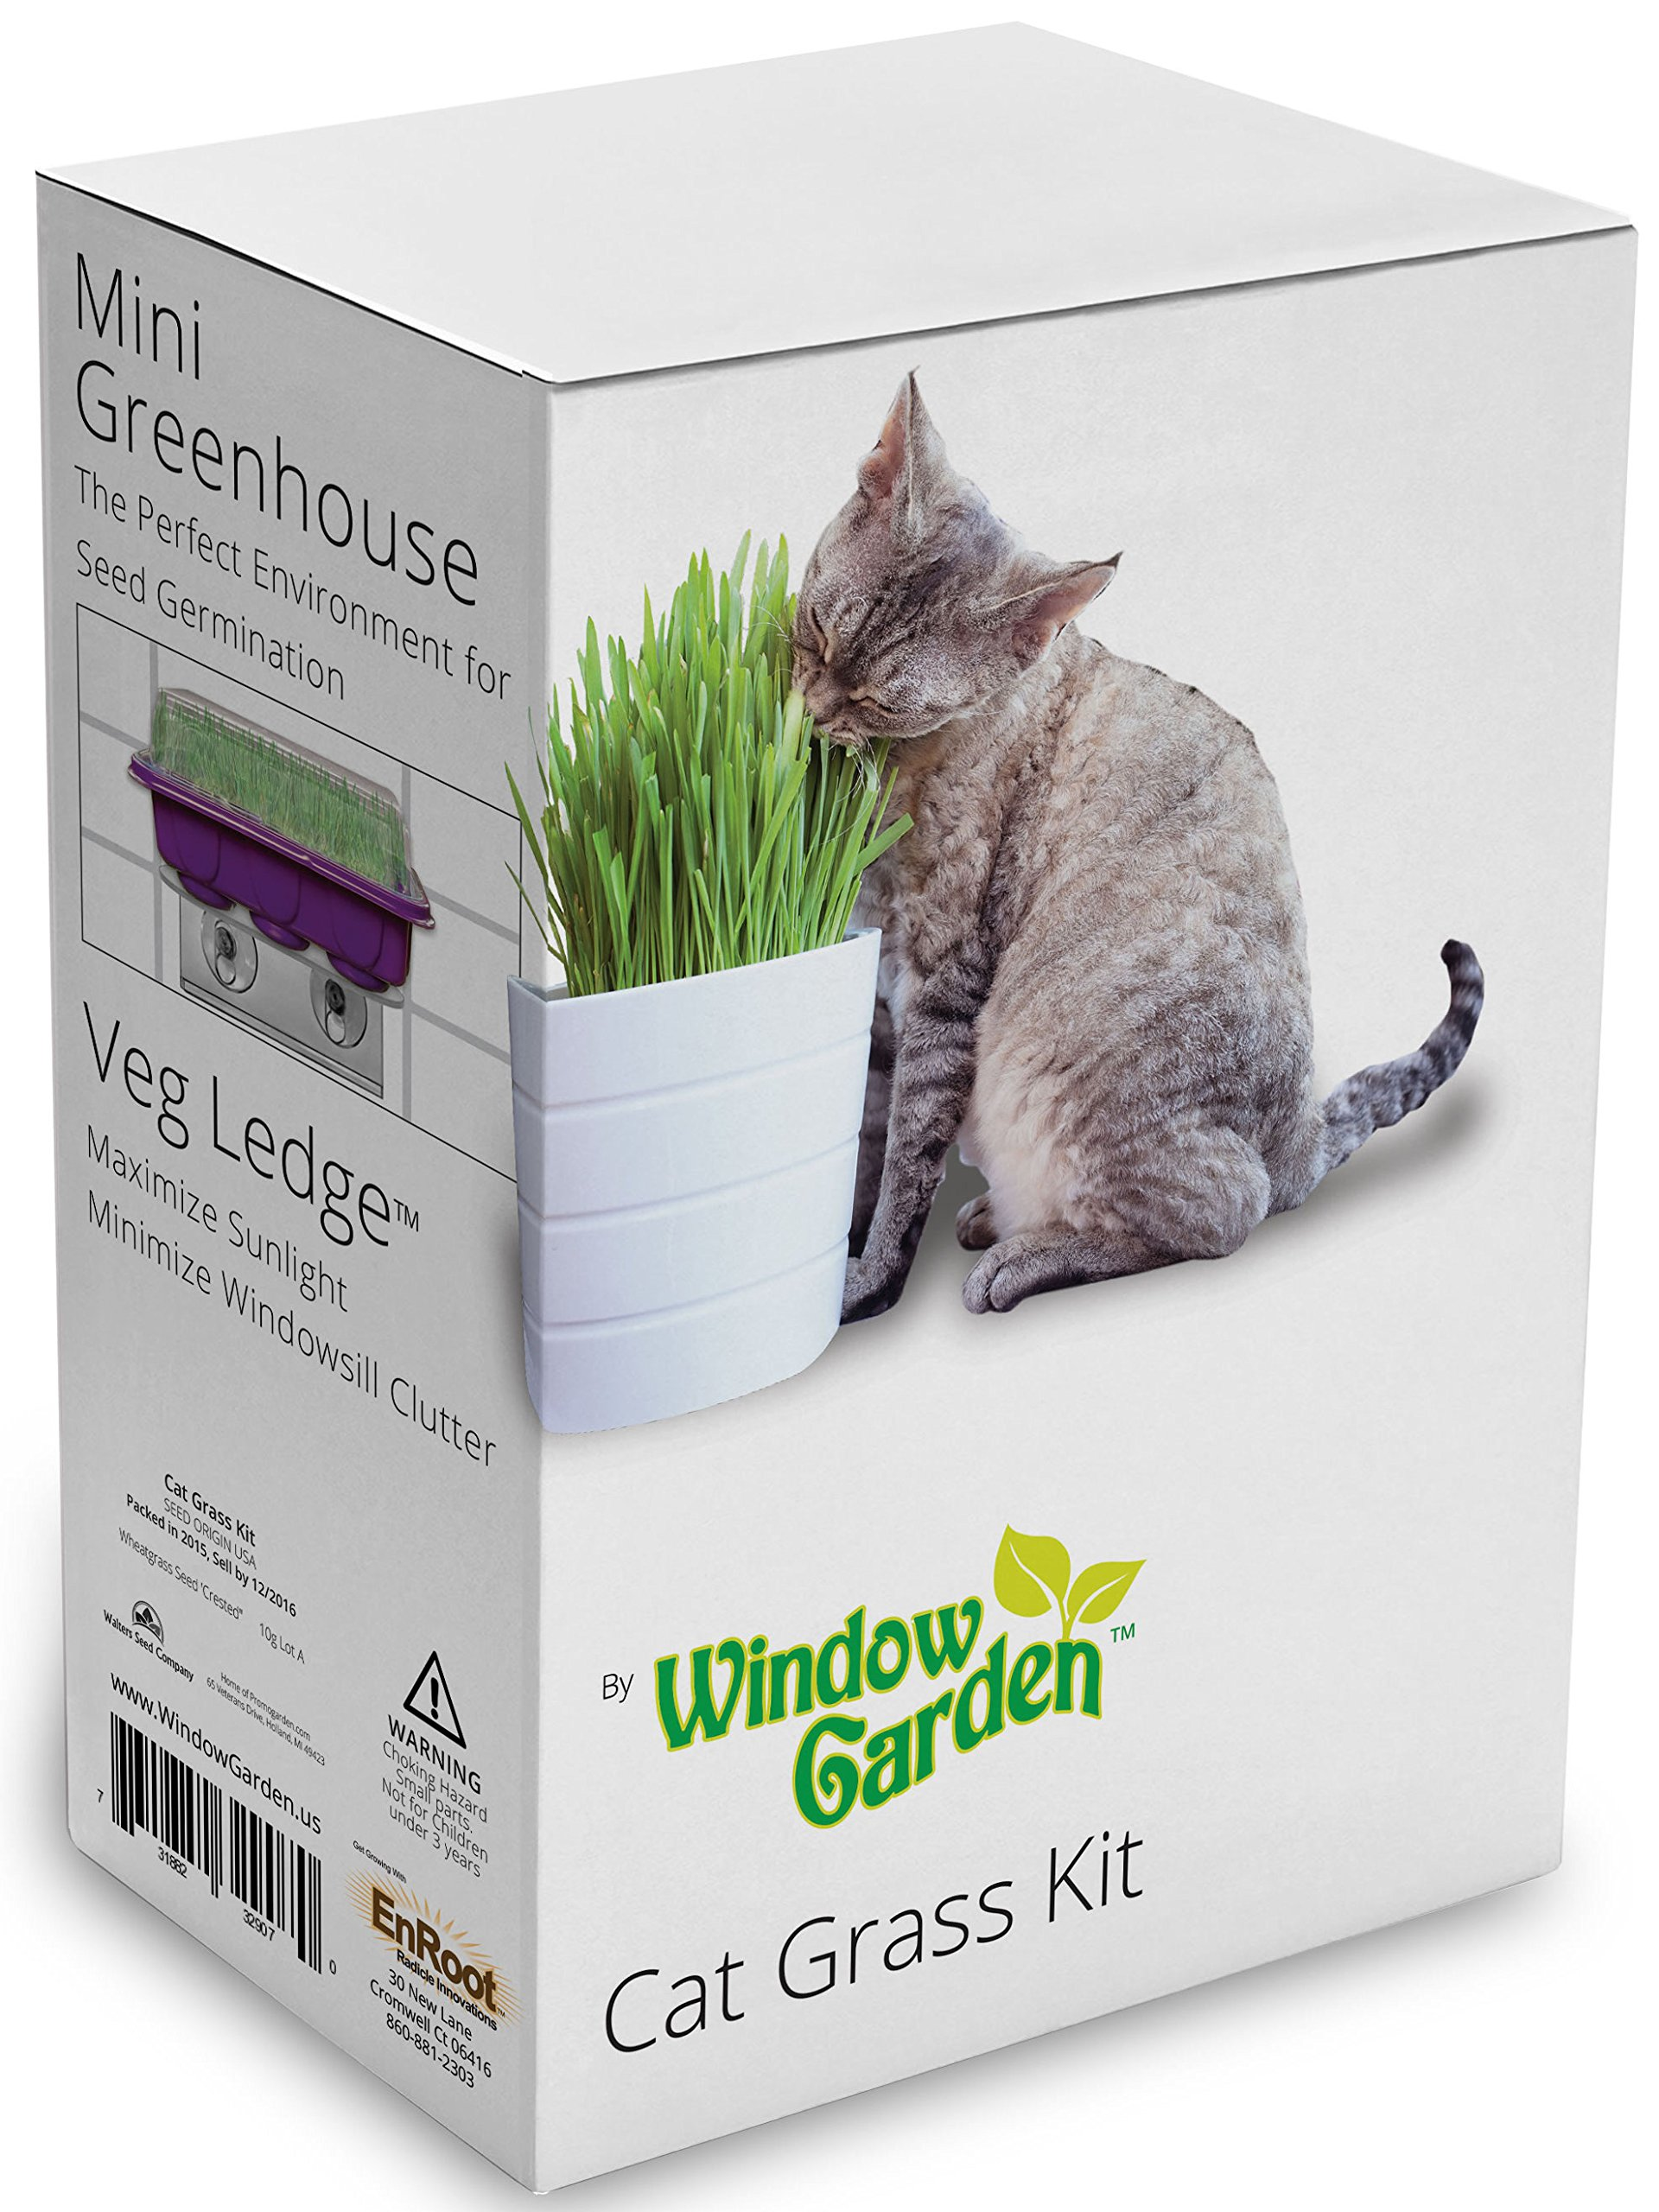 Window Garden Cat Grass Kit for Growing your Cat a Healthy Treat! Includes the Popular Space Saving Veg Ledge Suction Cup Window Shelf and Mini Greenhouse. Super Easy, Cat Lover Gift for All Ages.